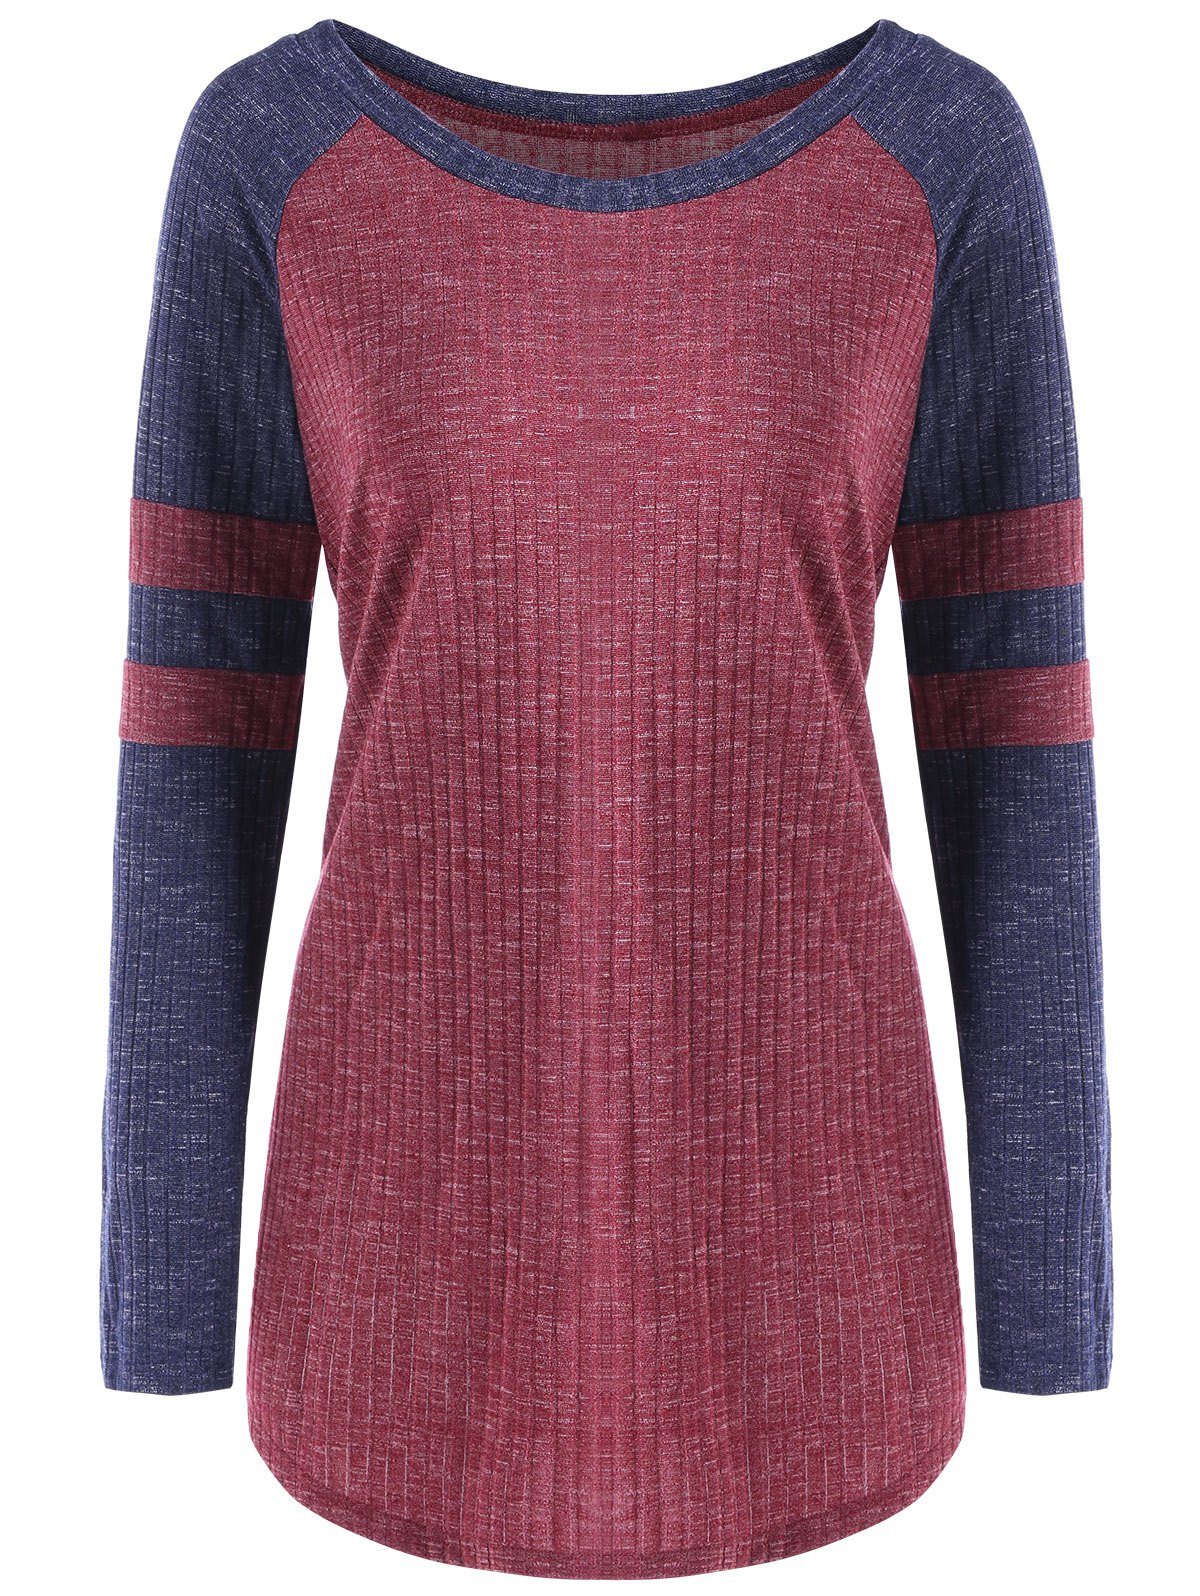 Color Block Raglan Sleeve Ribbed TopWOMEN<br><br>Size: M; Color: RED; Material: Cotton,Polyester,Spandex; Shirt Length: Long; Sleeve Length: Full; Collar: Scoop Neck; Style: Casual; Sleeve Type: Raglan Sleeve; Pattern Type: Others; Season: Fall,Spring; Weight: 0.3120kg; Package Contents: 1 x Top;